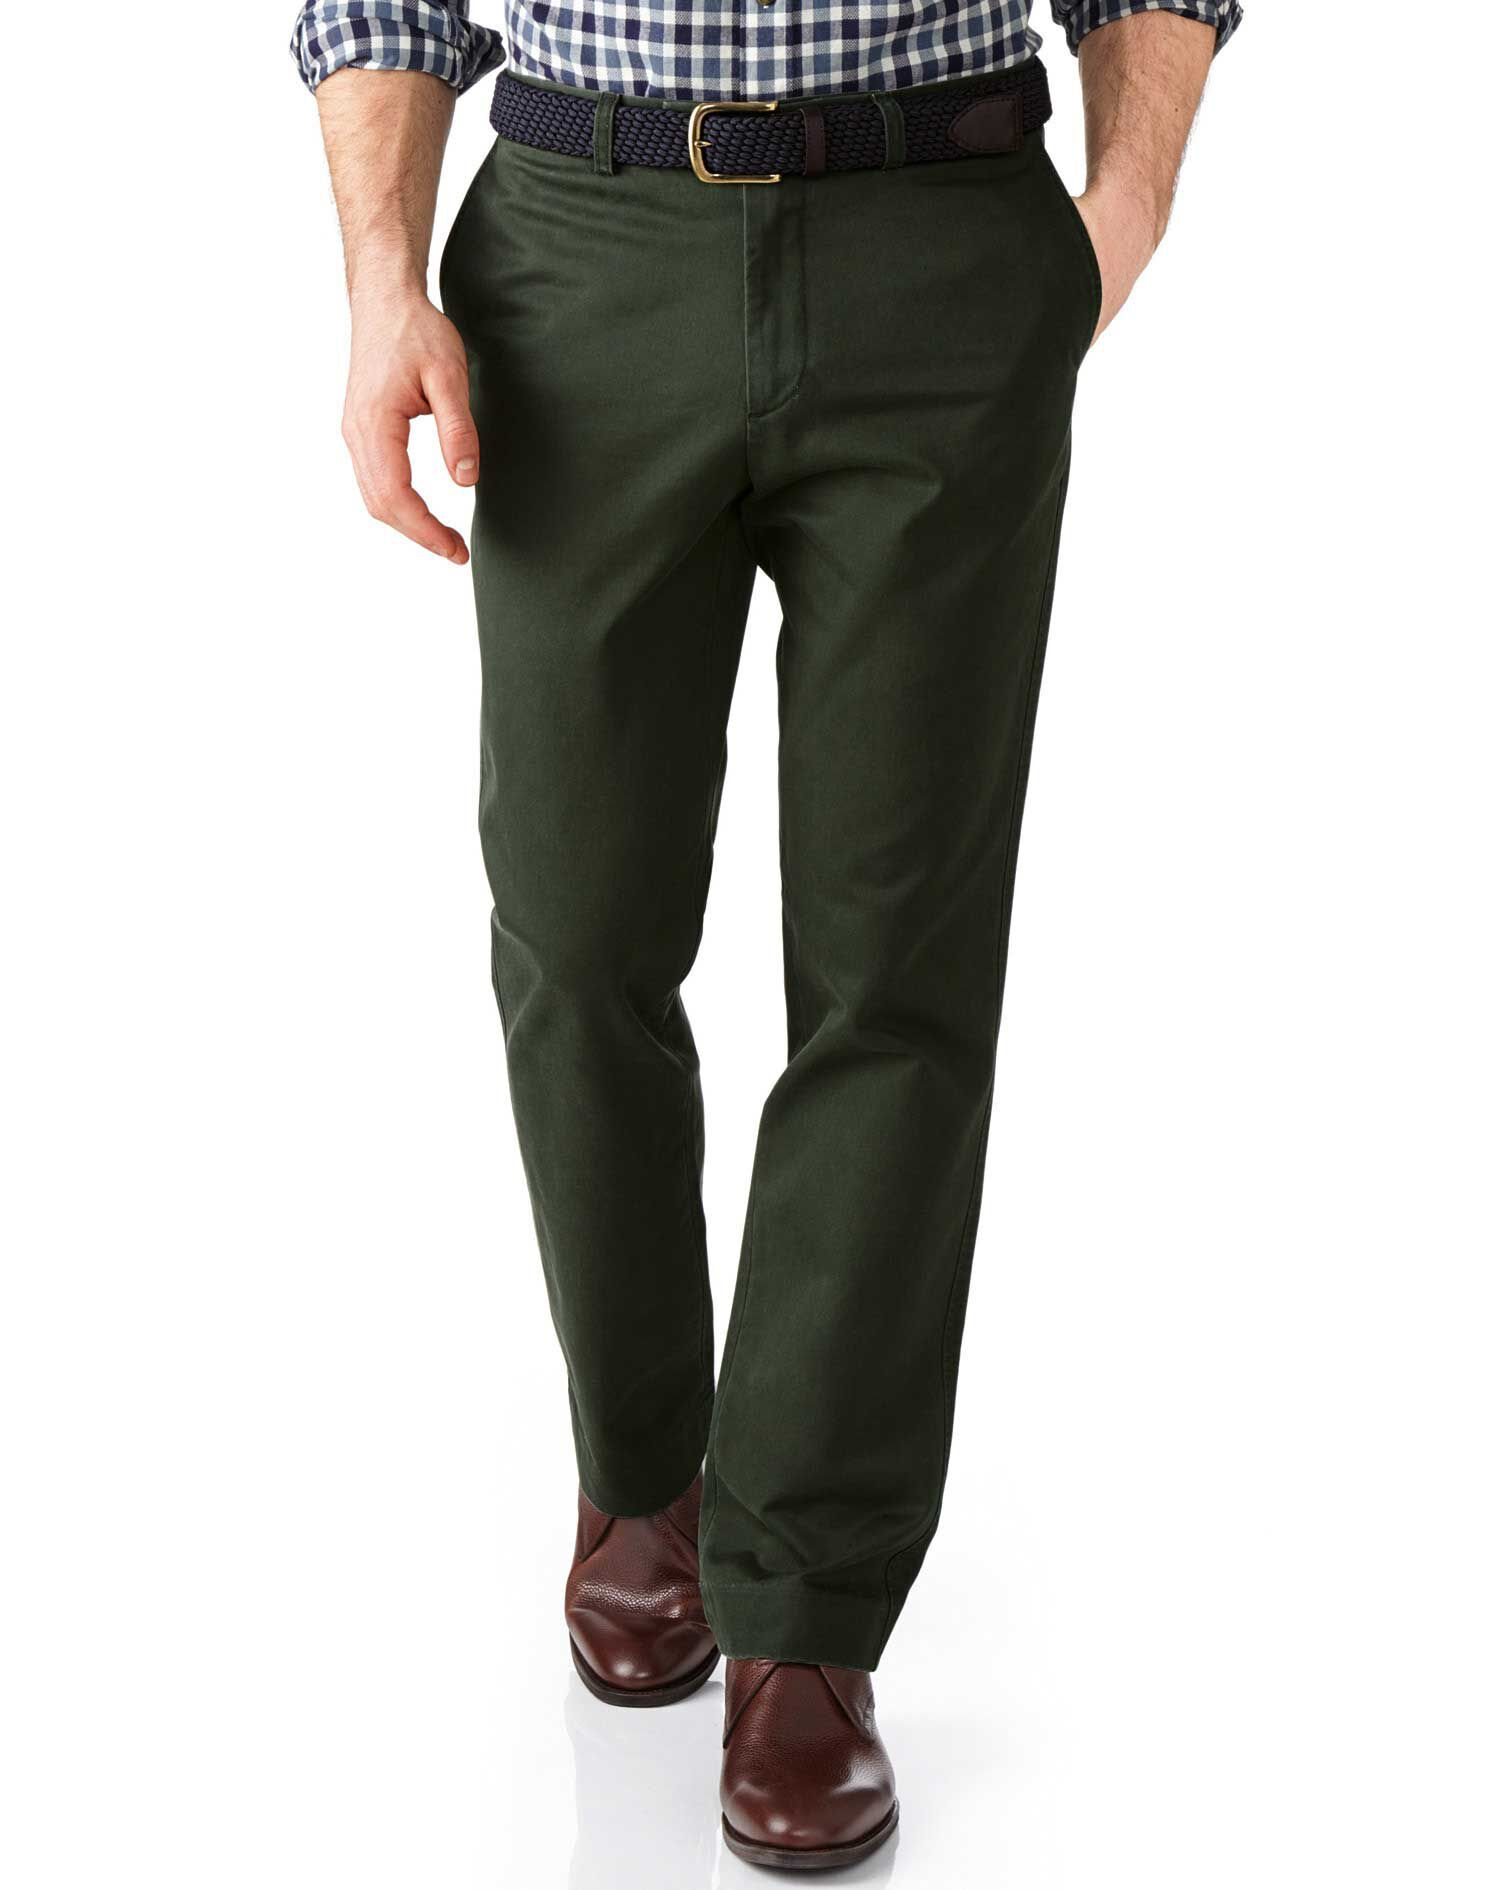 Dark Green Slim Fit Flat Front Weekend Cotton Chino Trousers Size W42 L38 by Charles Tyrwhitt